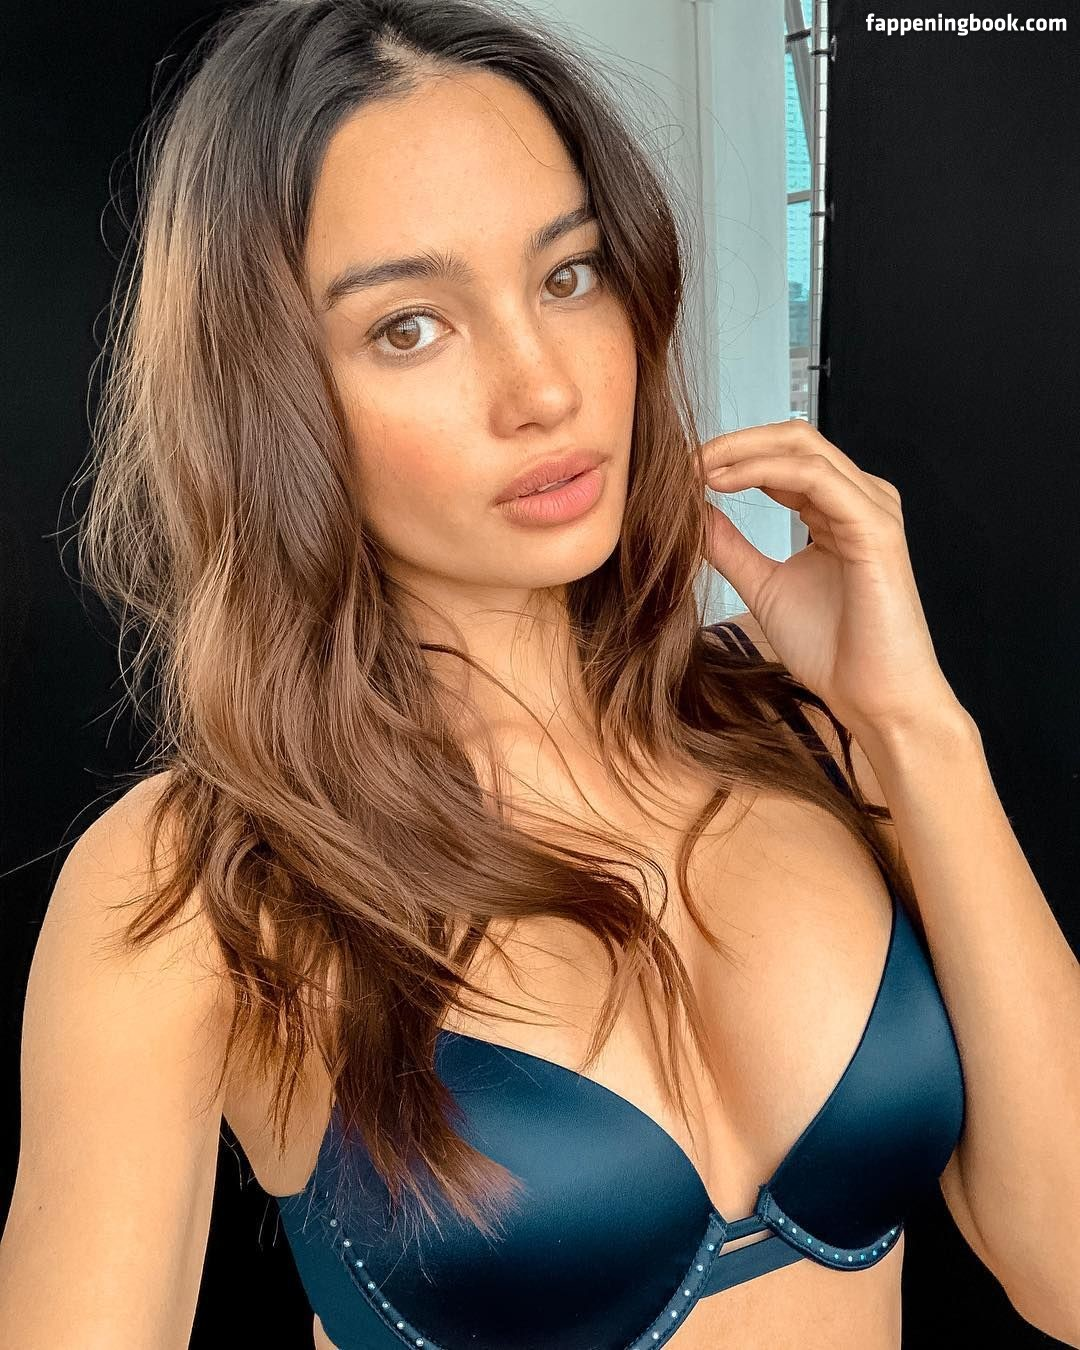 Kelsey Merritt Nude, Sexy, The Fappening, Uncensored